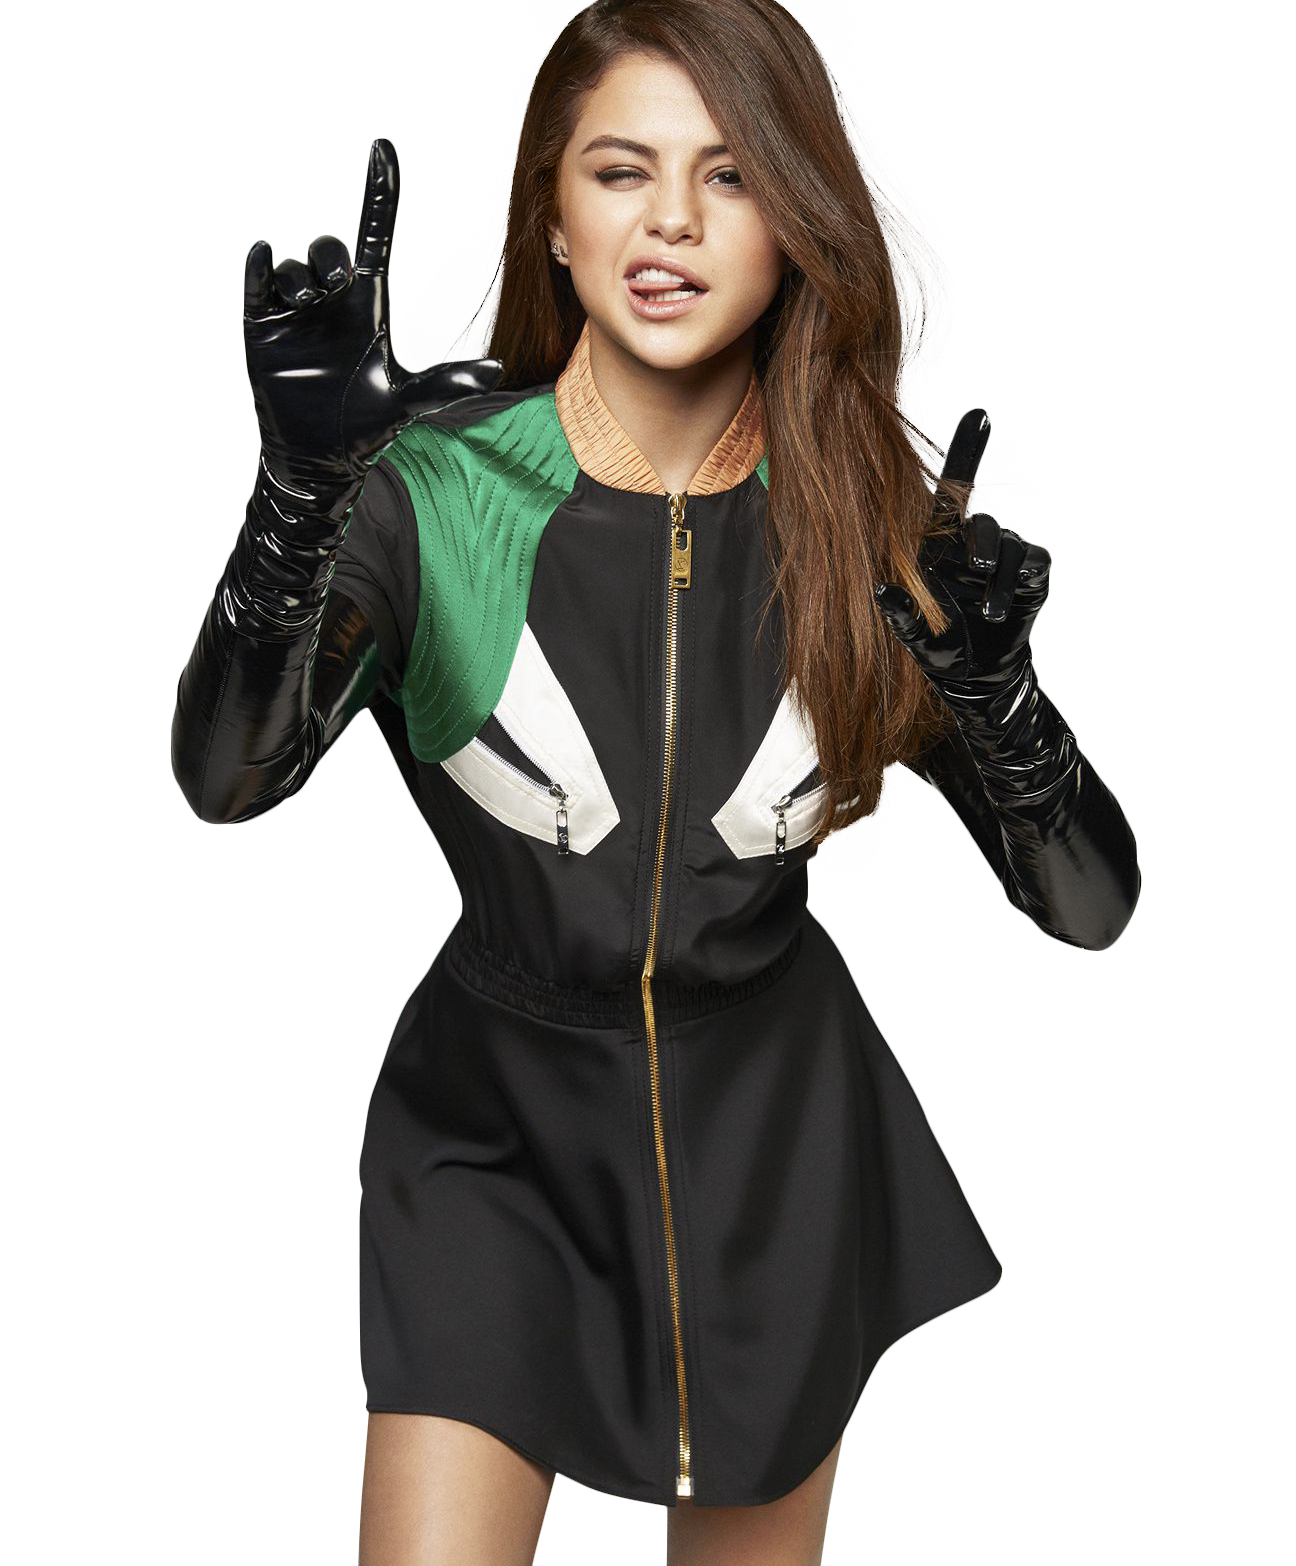 Selena Gomez Looking Hot PNG Image